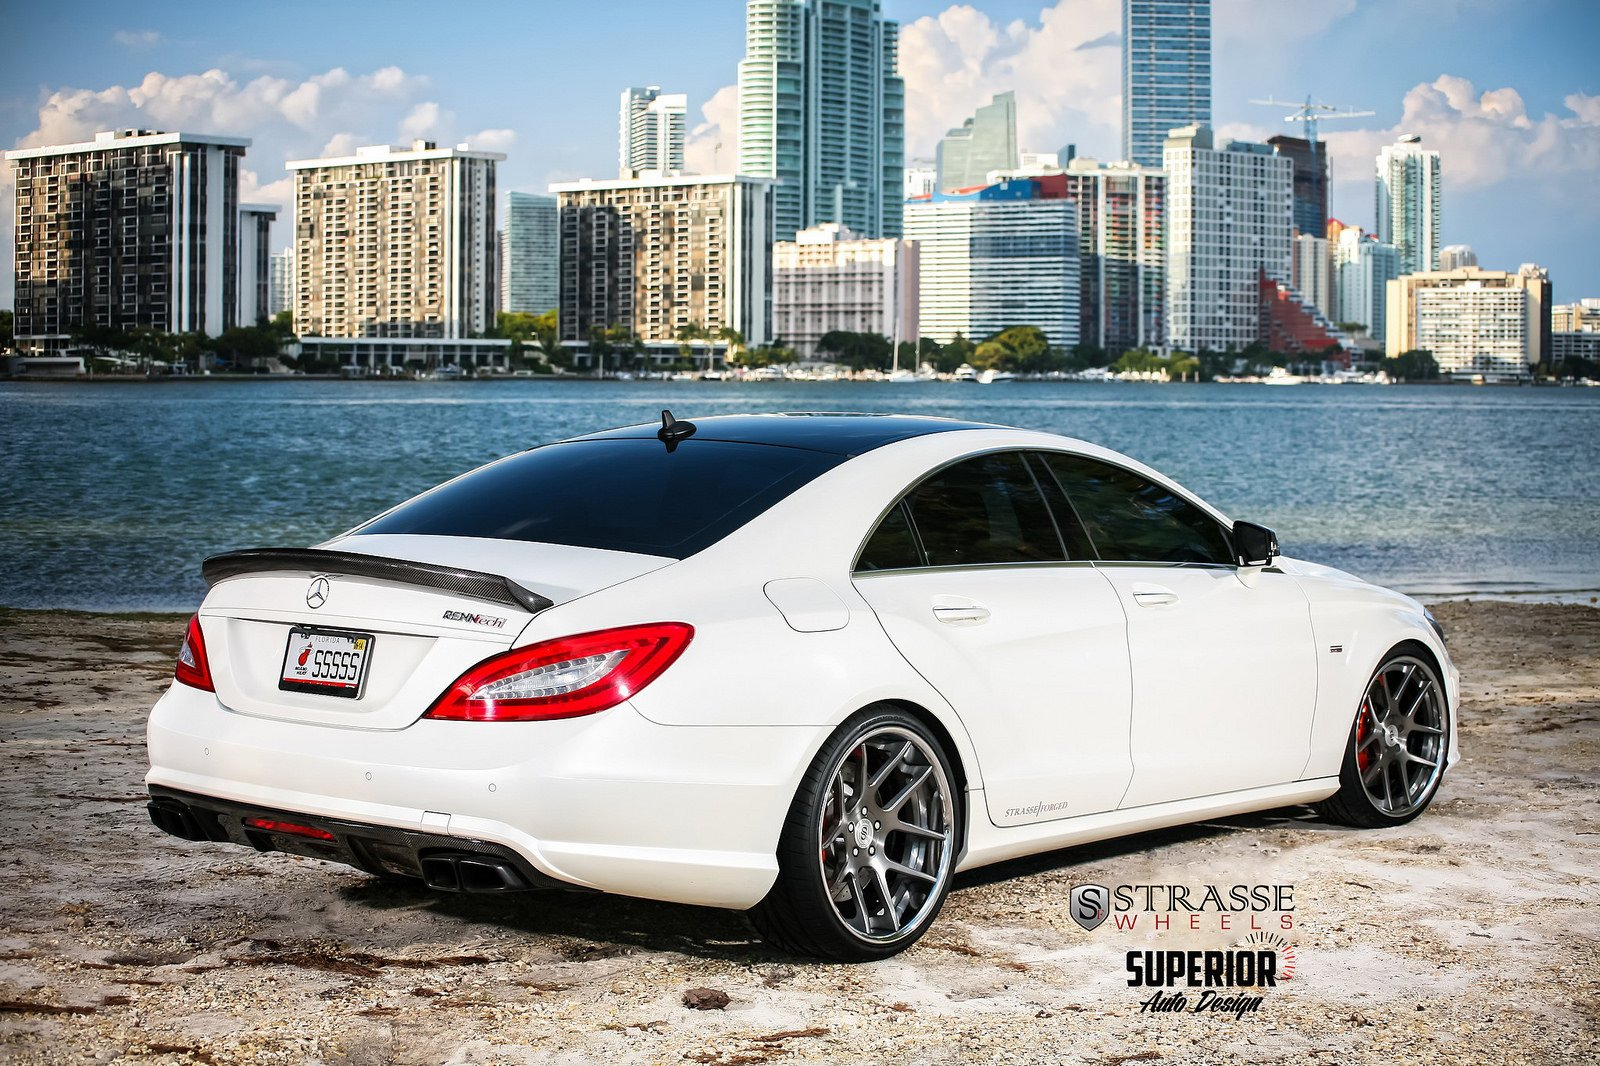 mercedes cls63 amg strasse wheels tuning cars white. Black Bedroom Furniture Sets. Home Design Ideas